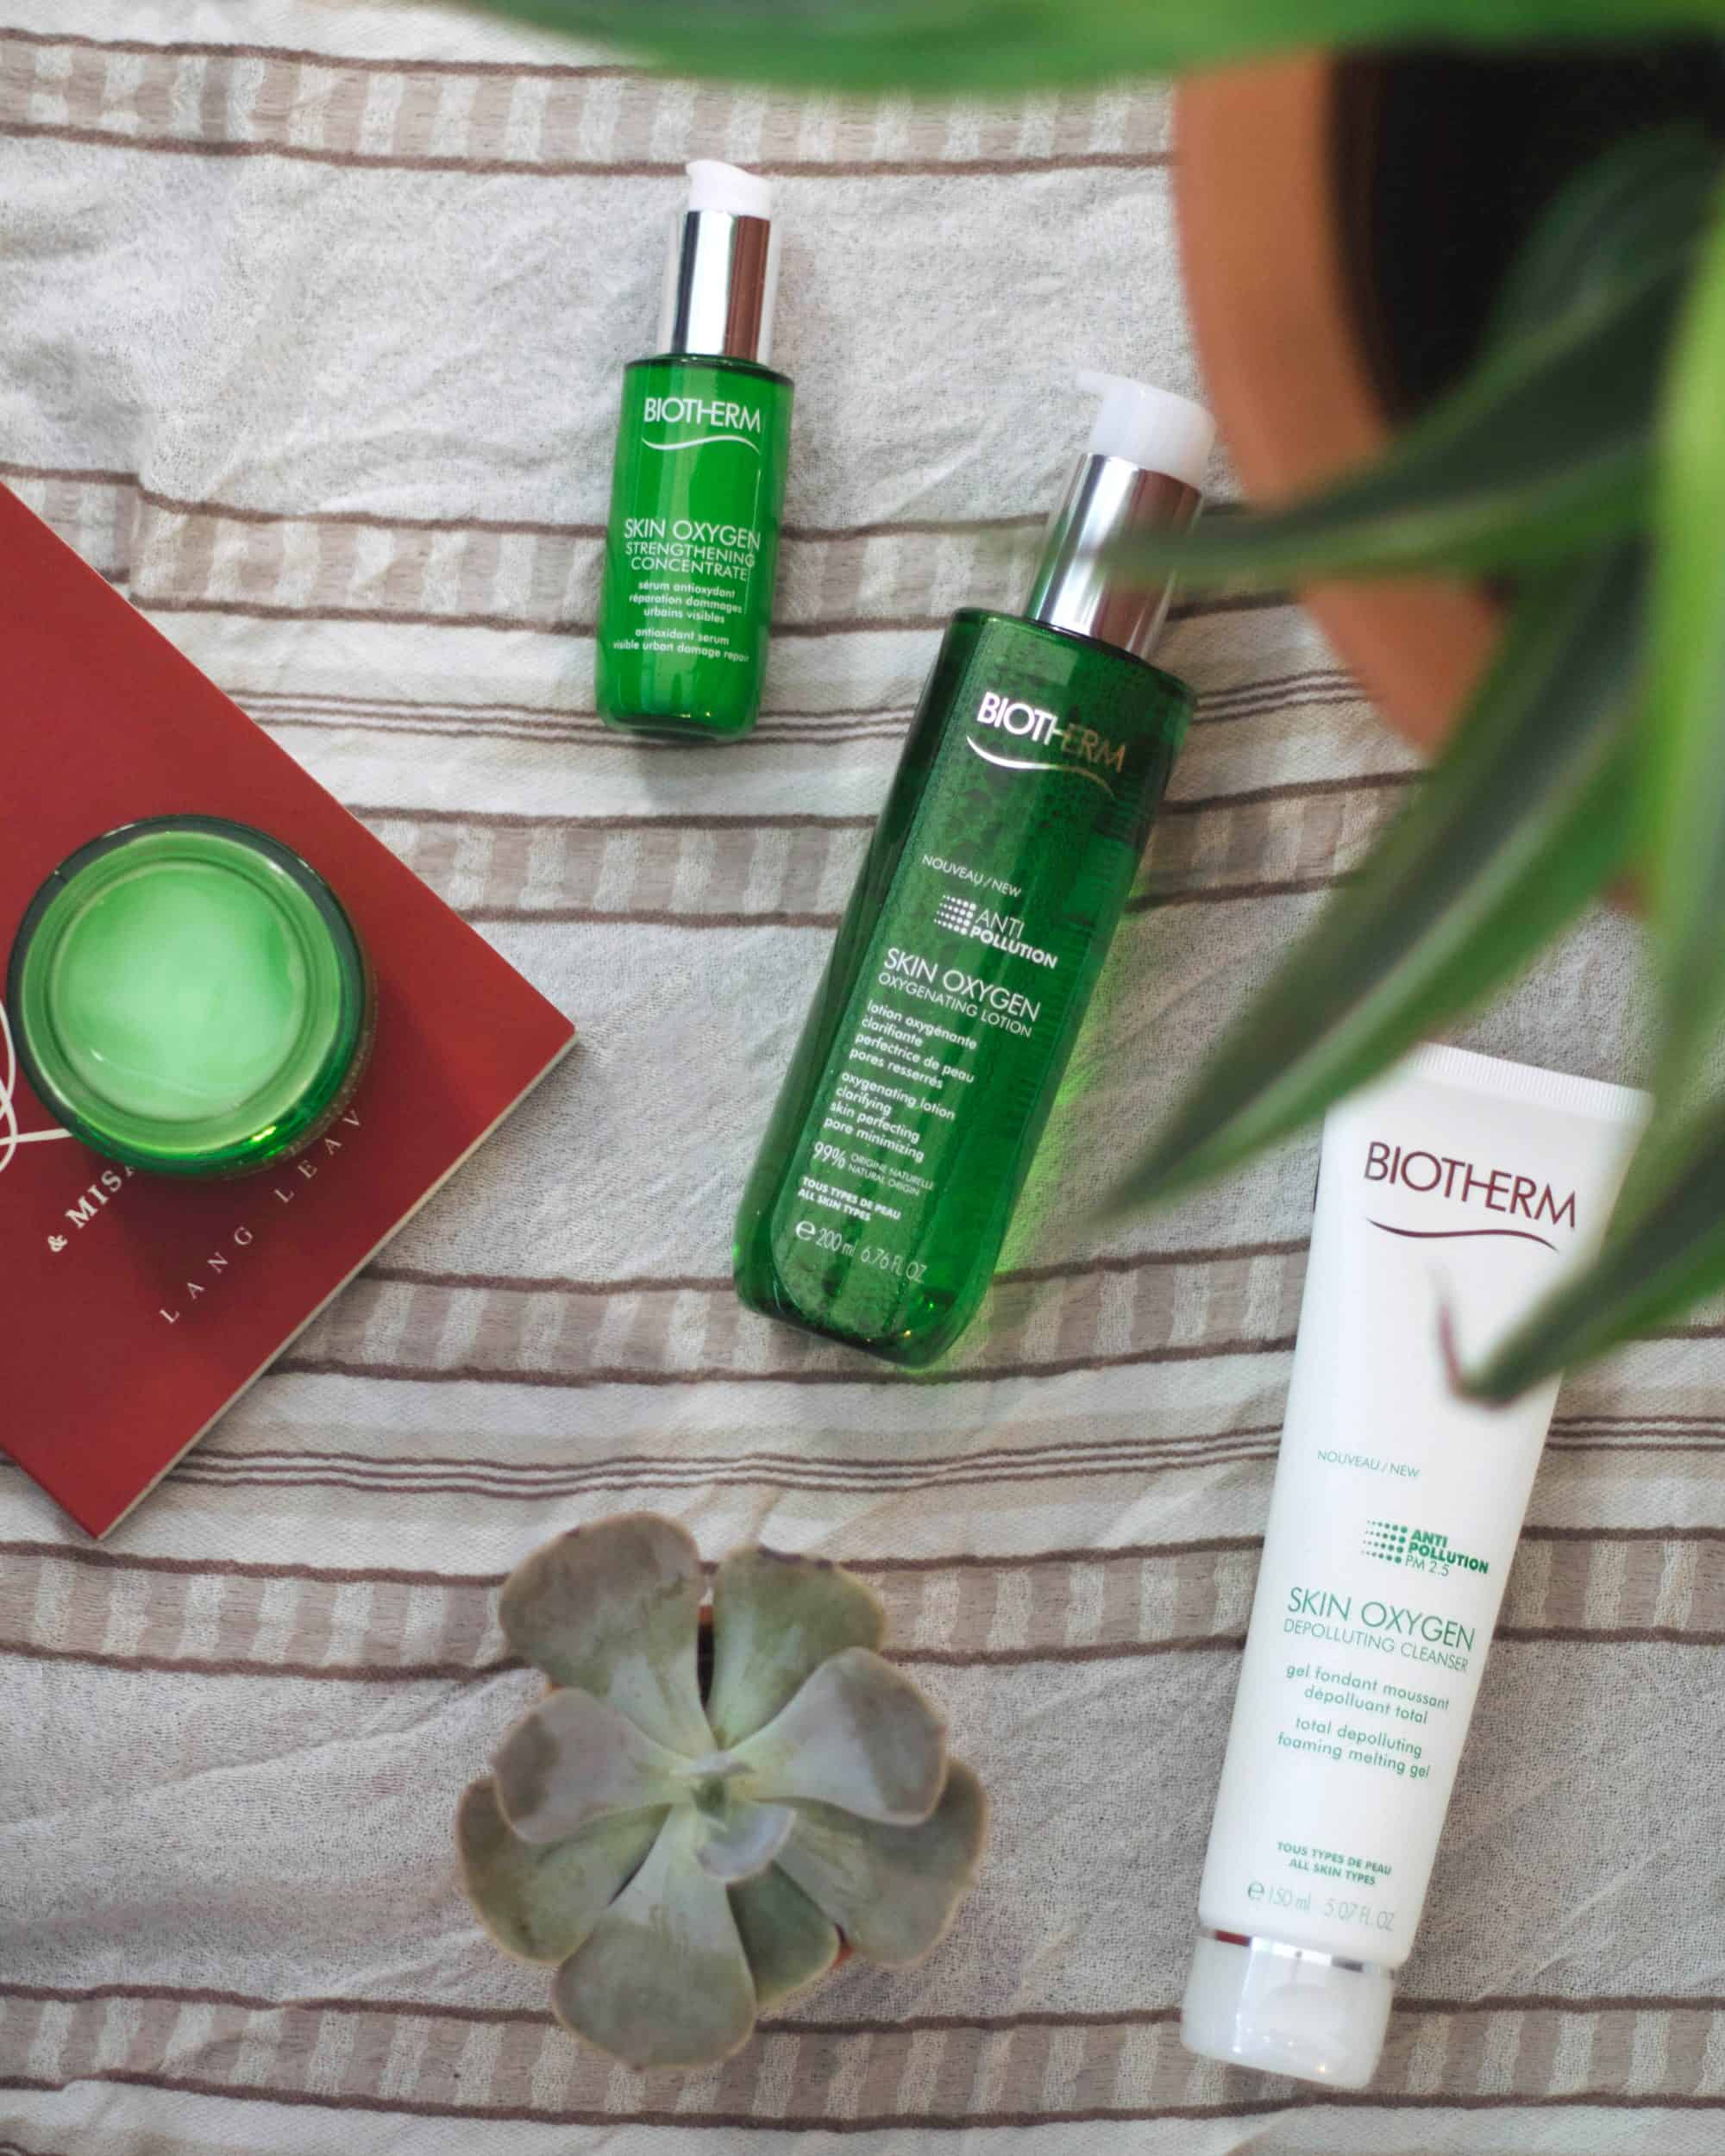 Biotherm Skin Oxygen collection